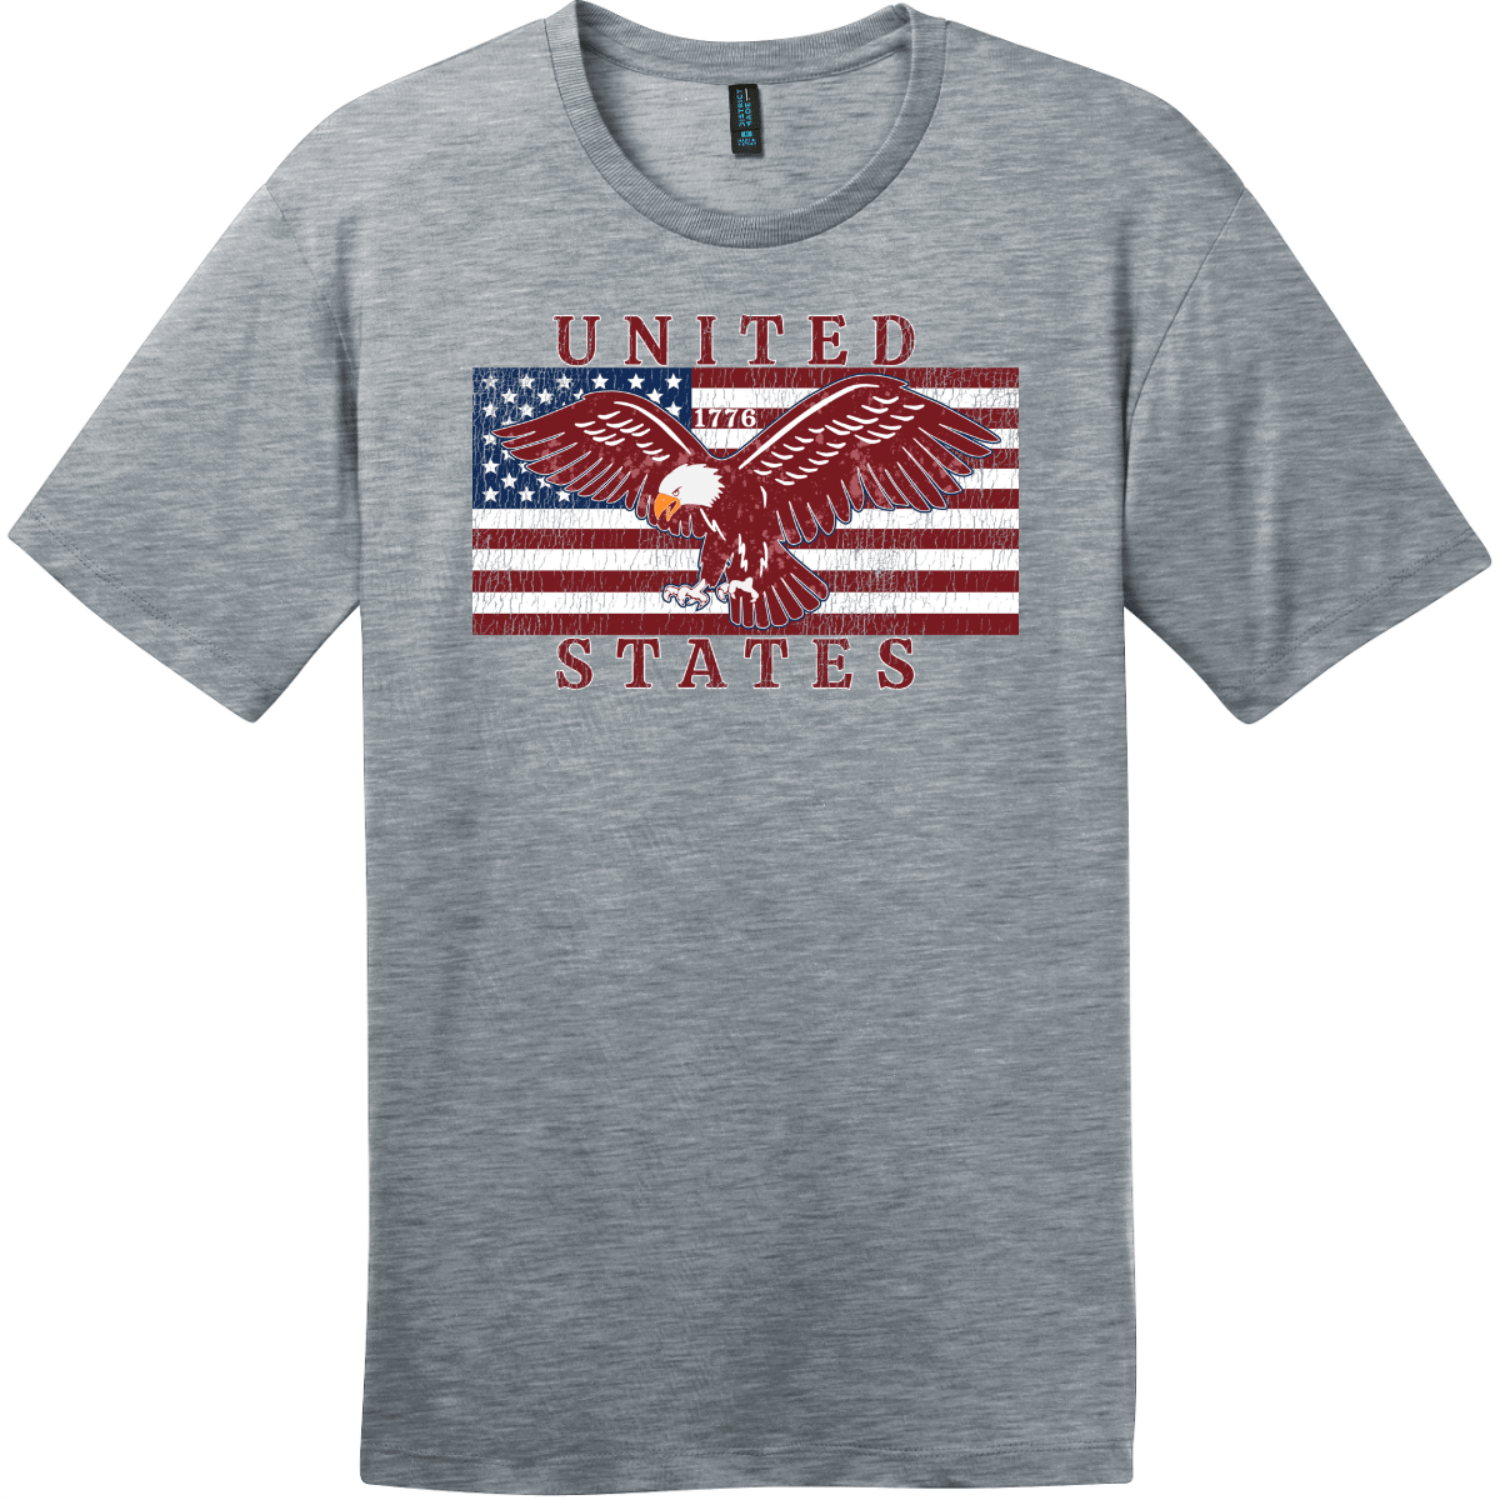 United States Flag Eagle Vintage T-Shirt Heathered Steel District Perfect Weight Tee DT104